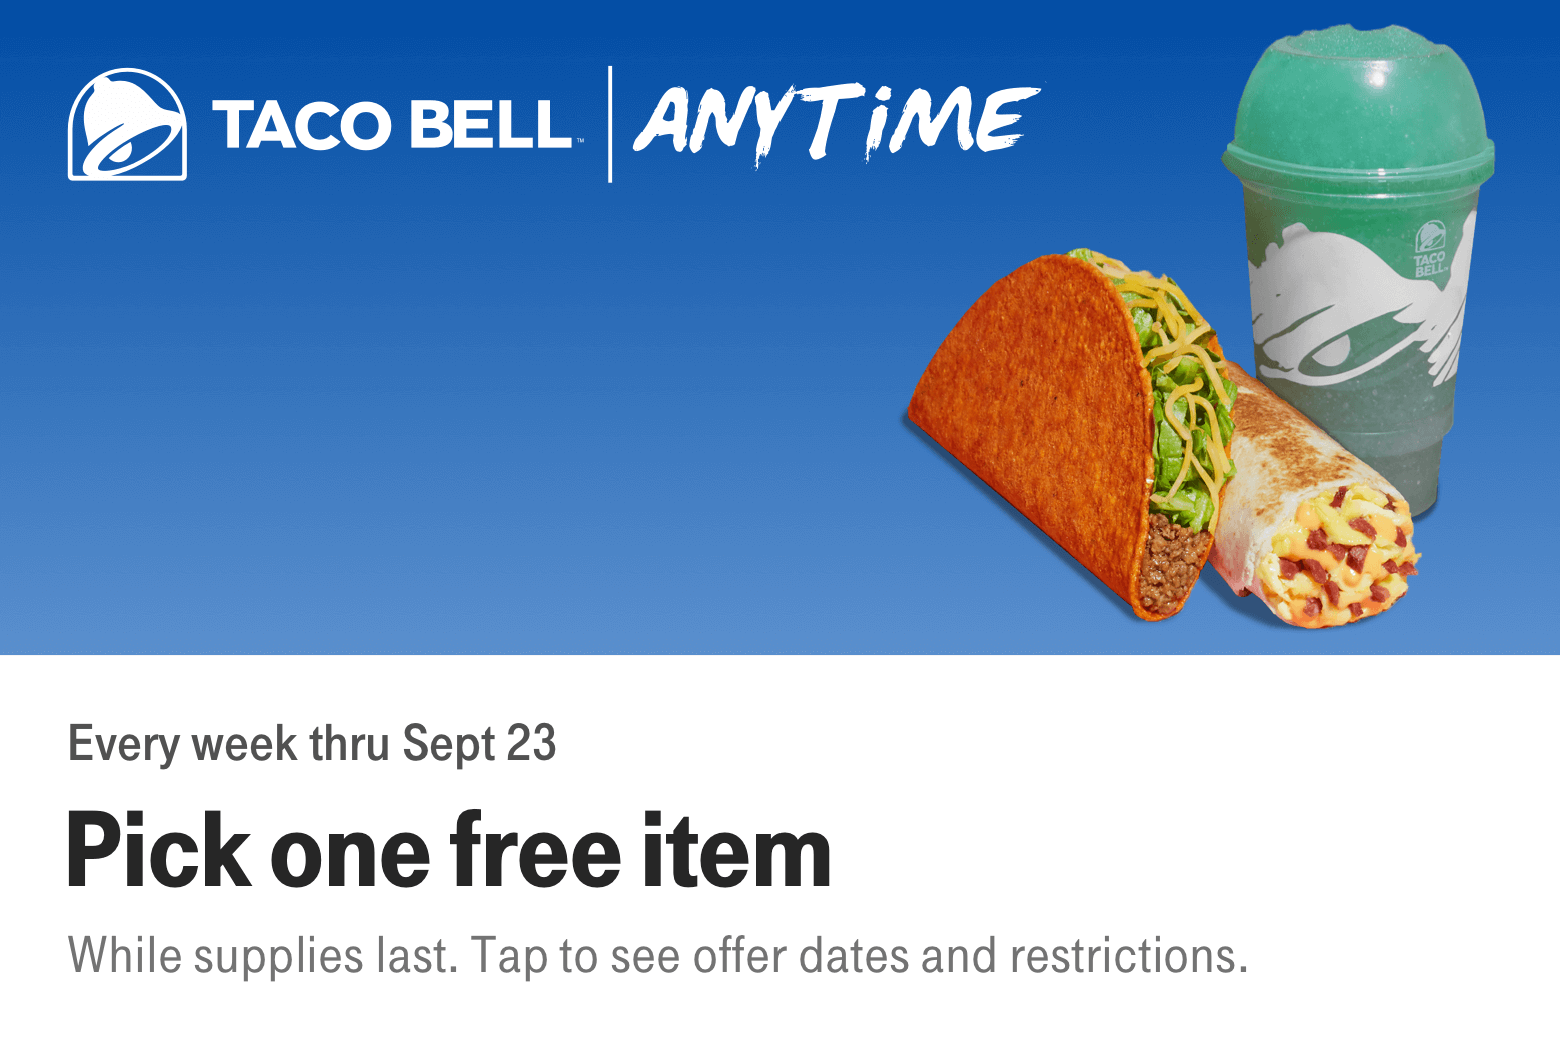 Taco Bell. Anytime. Every week thru Sept 23. Pick one free item. While supplies last. Tap to see offer dates and restrictions.